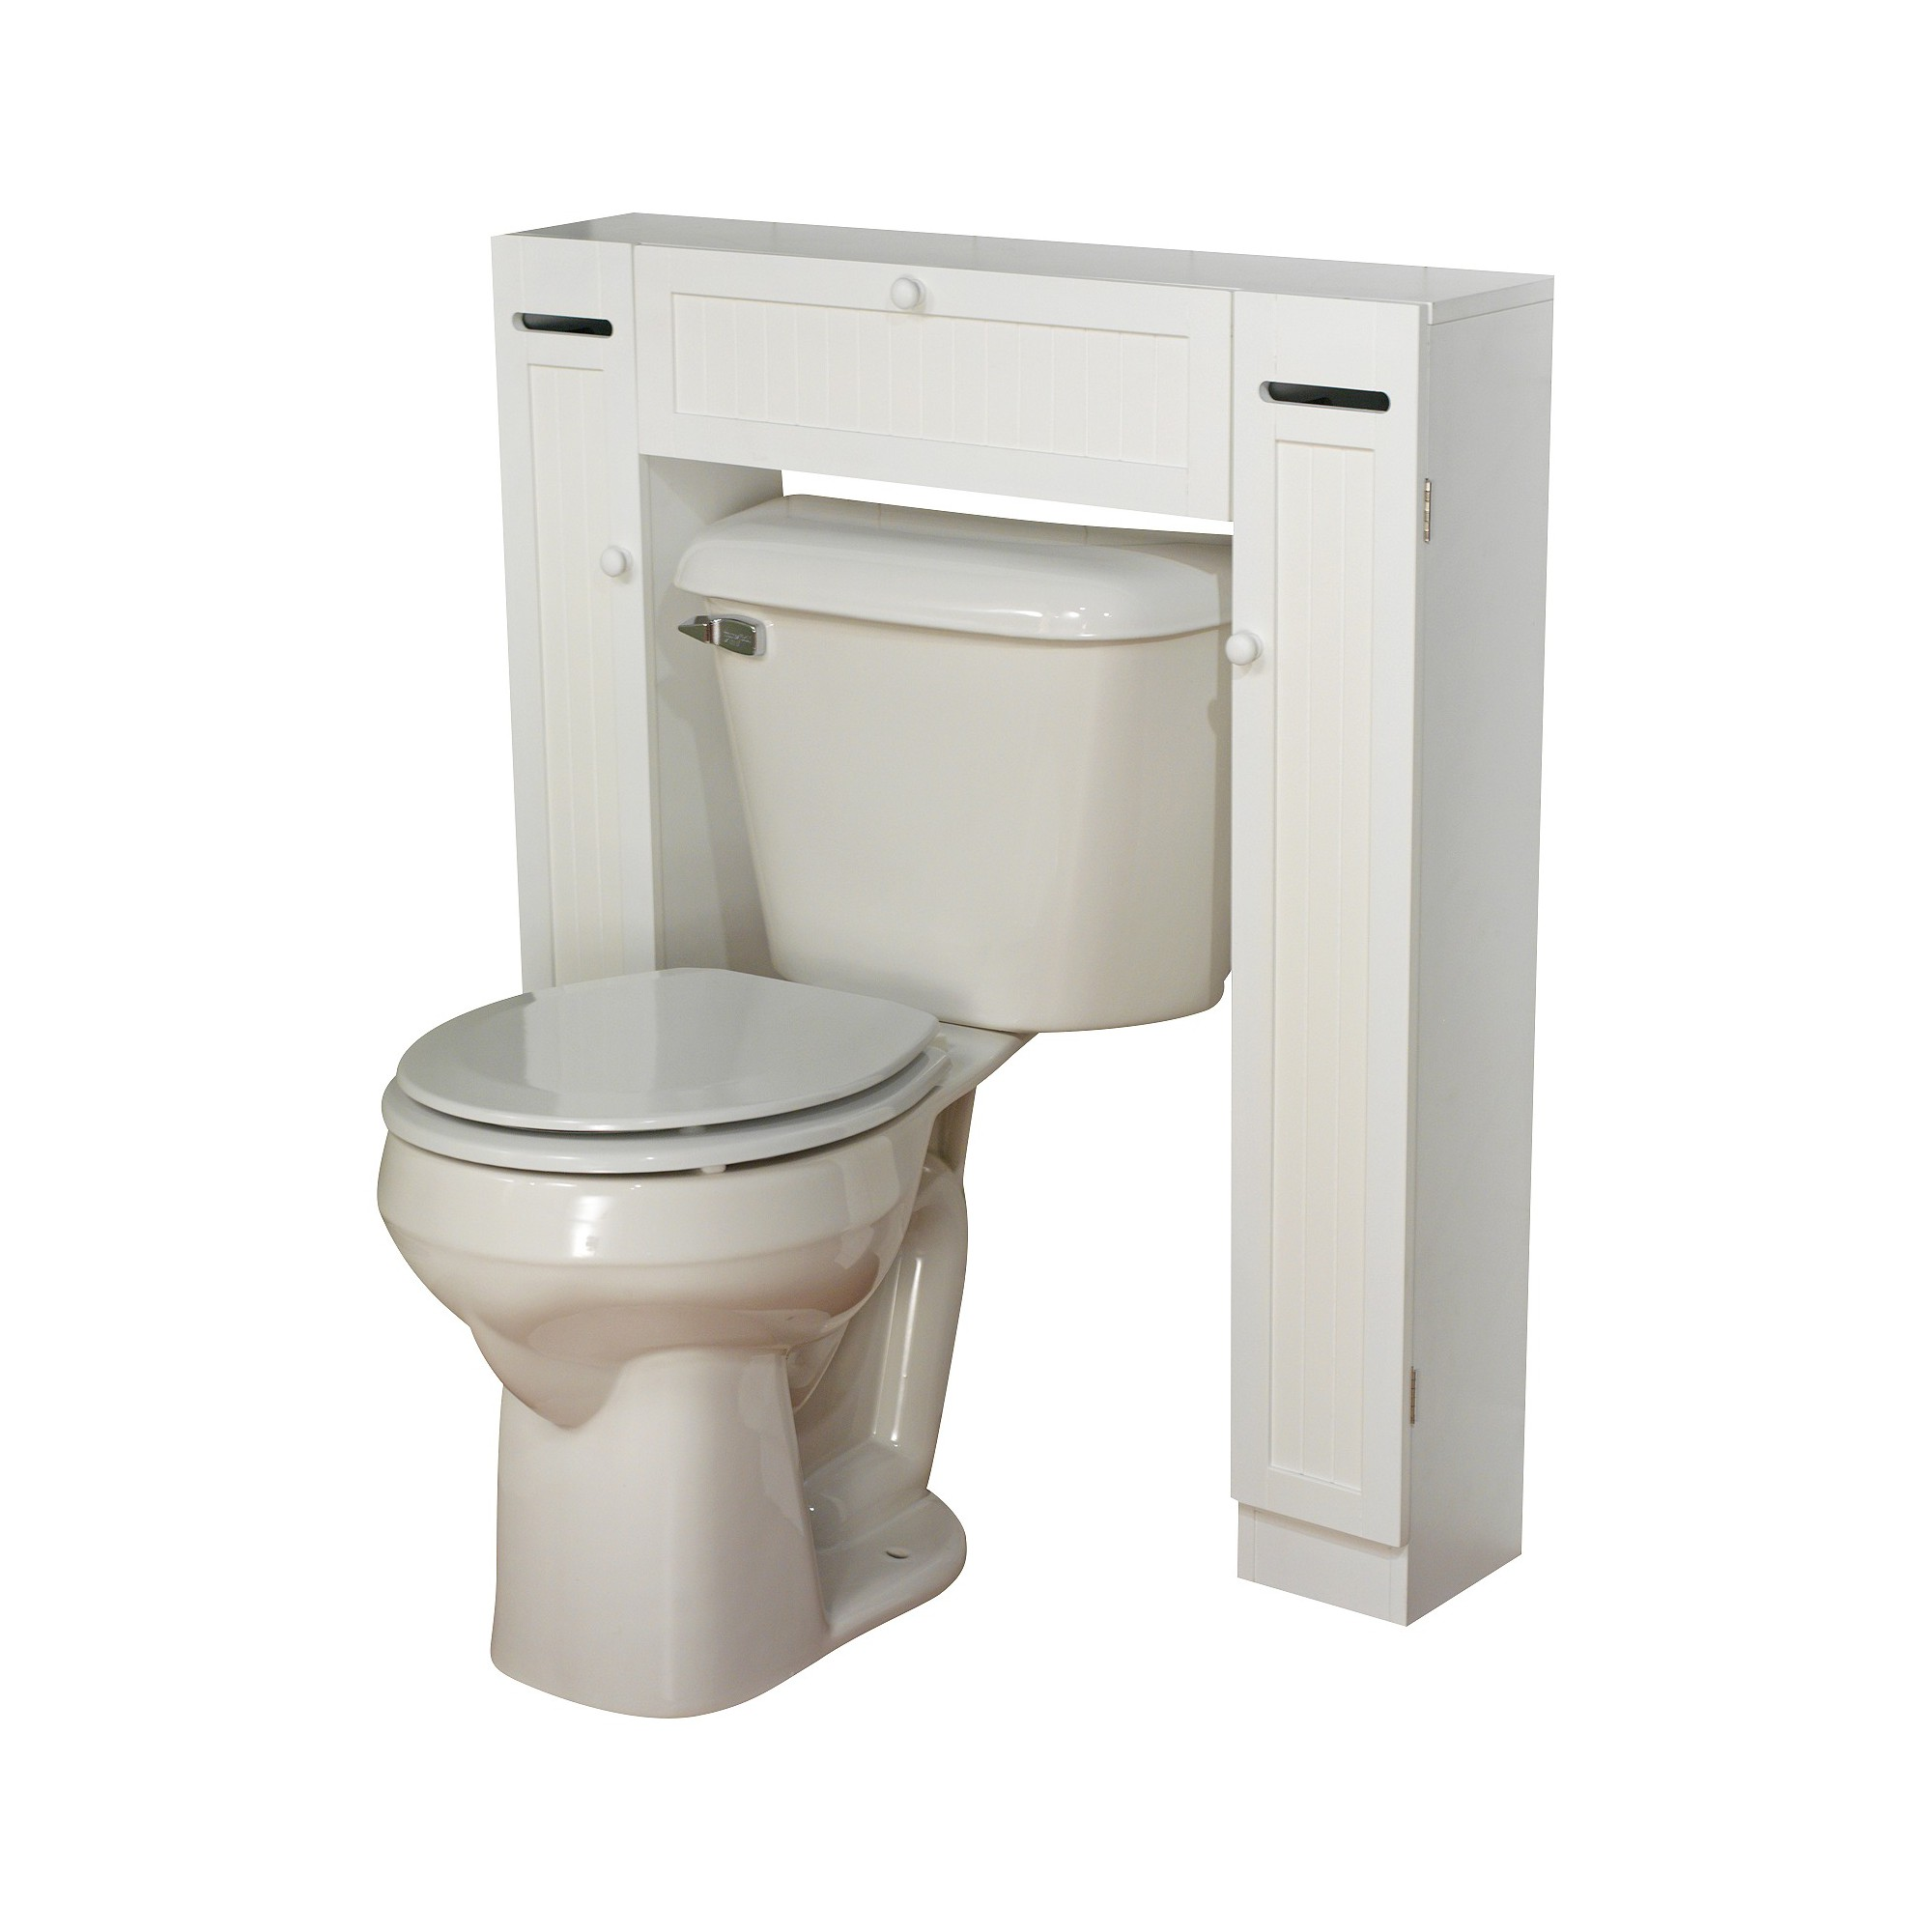 Smart Space Over Toilet Étagère White - Tms   Toilet and Spaces